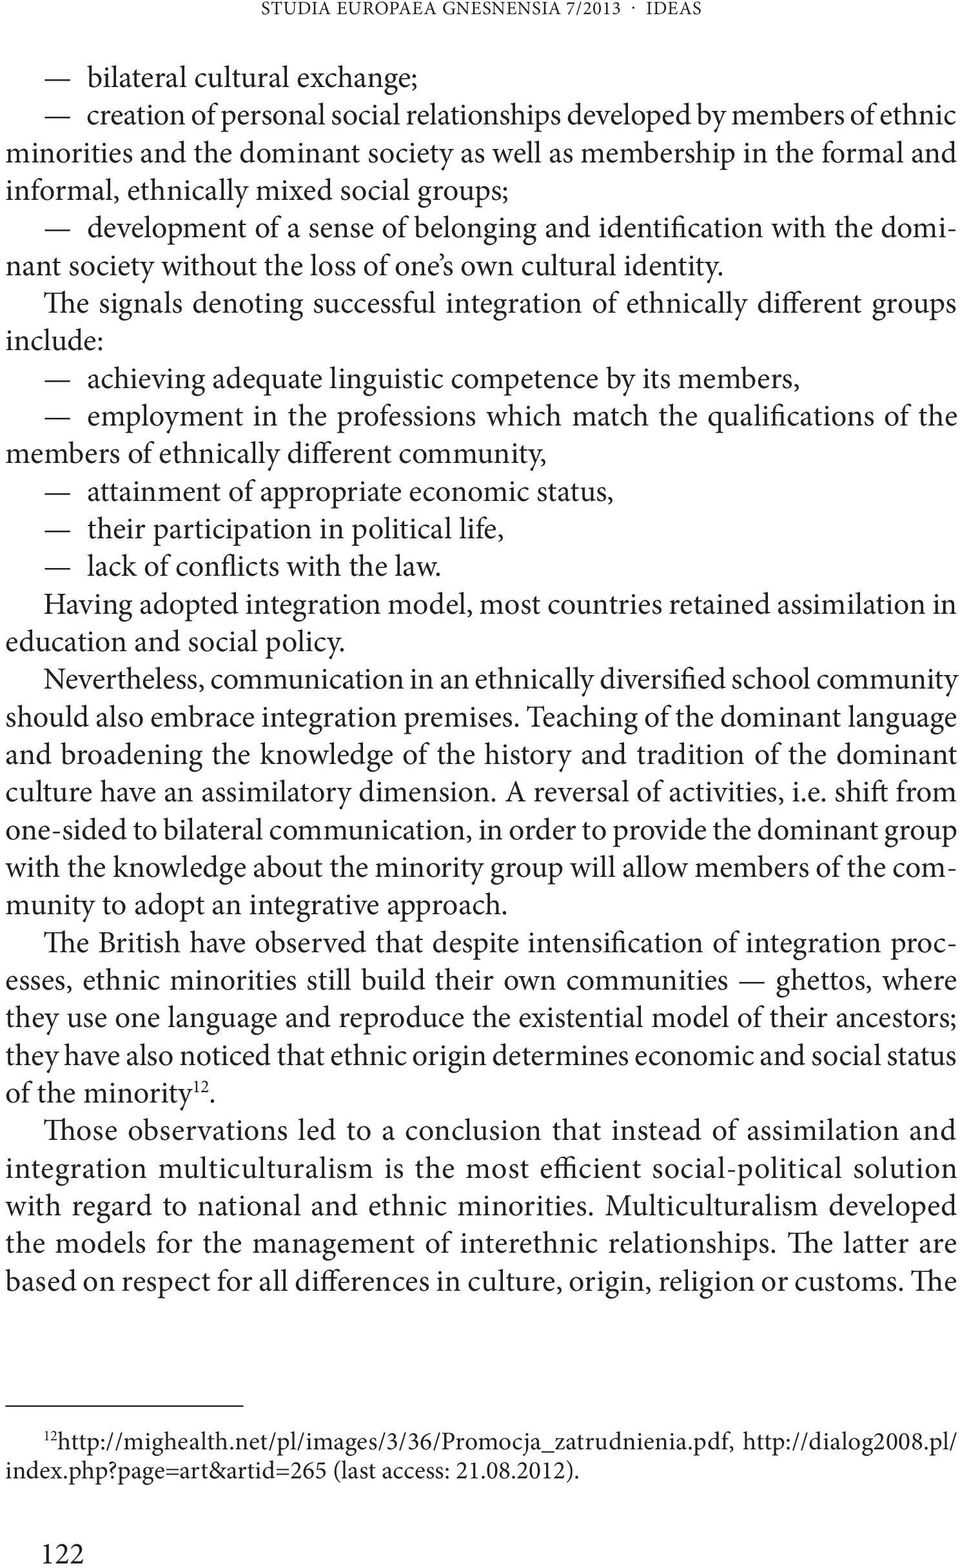 The signals denoting successful integration of ethnically different groups include: achieving adequate linguistic competence by its members, employment in the professions which match the